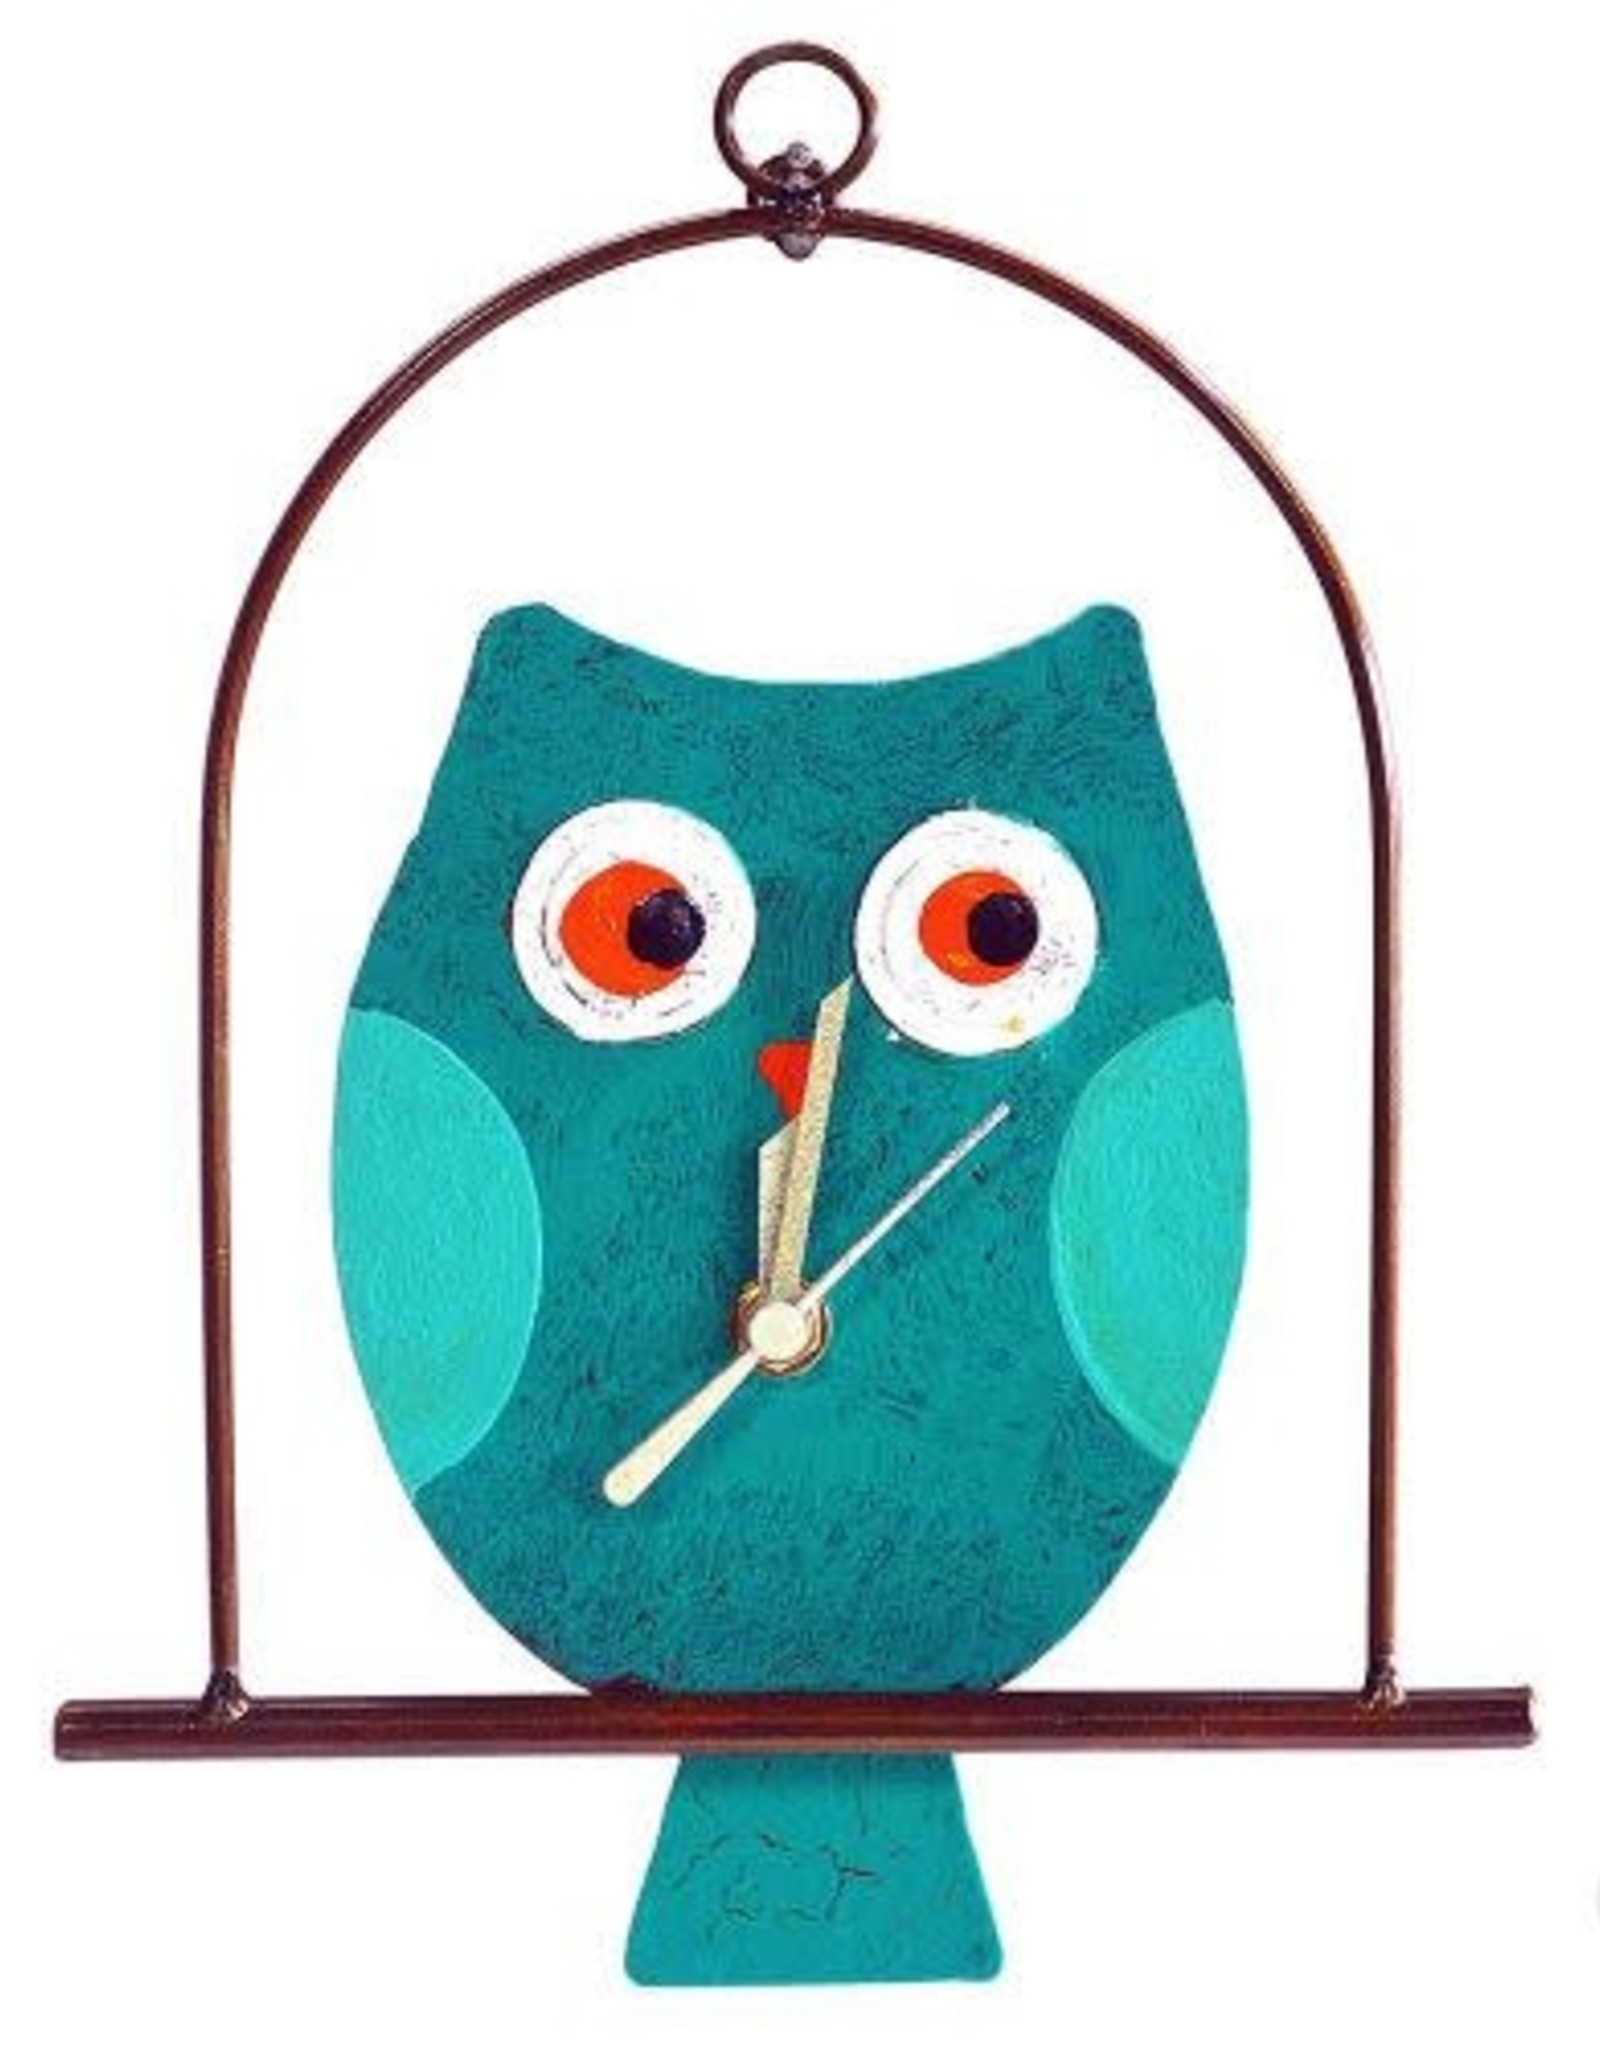 Silly Clocks Owl in a Cage, Teal, Colombia